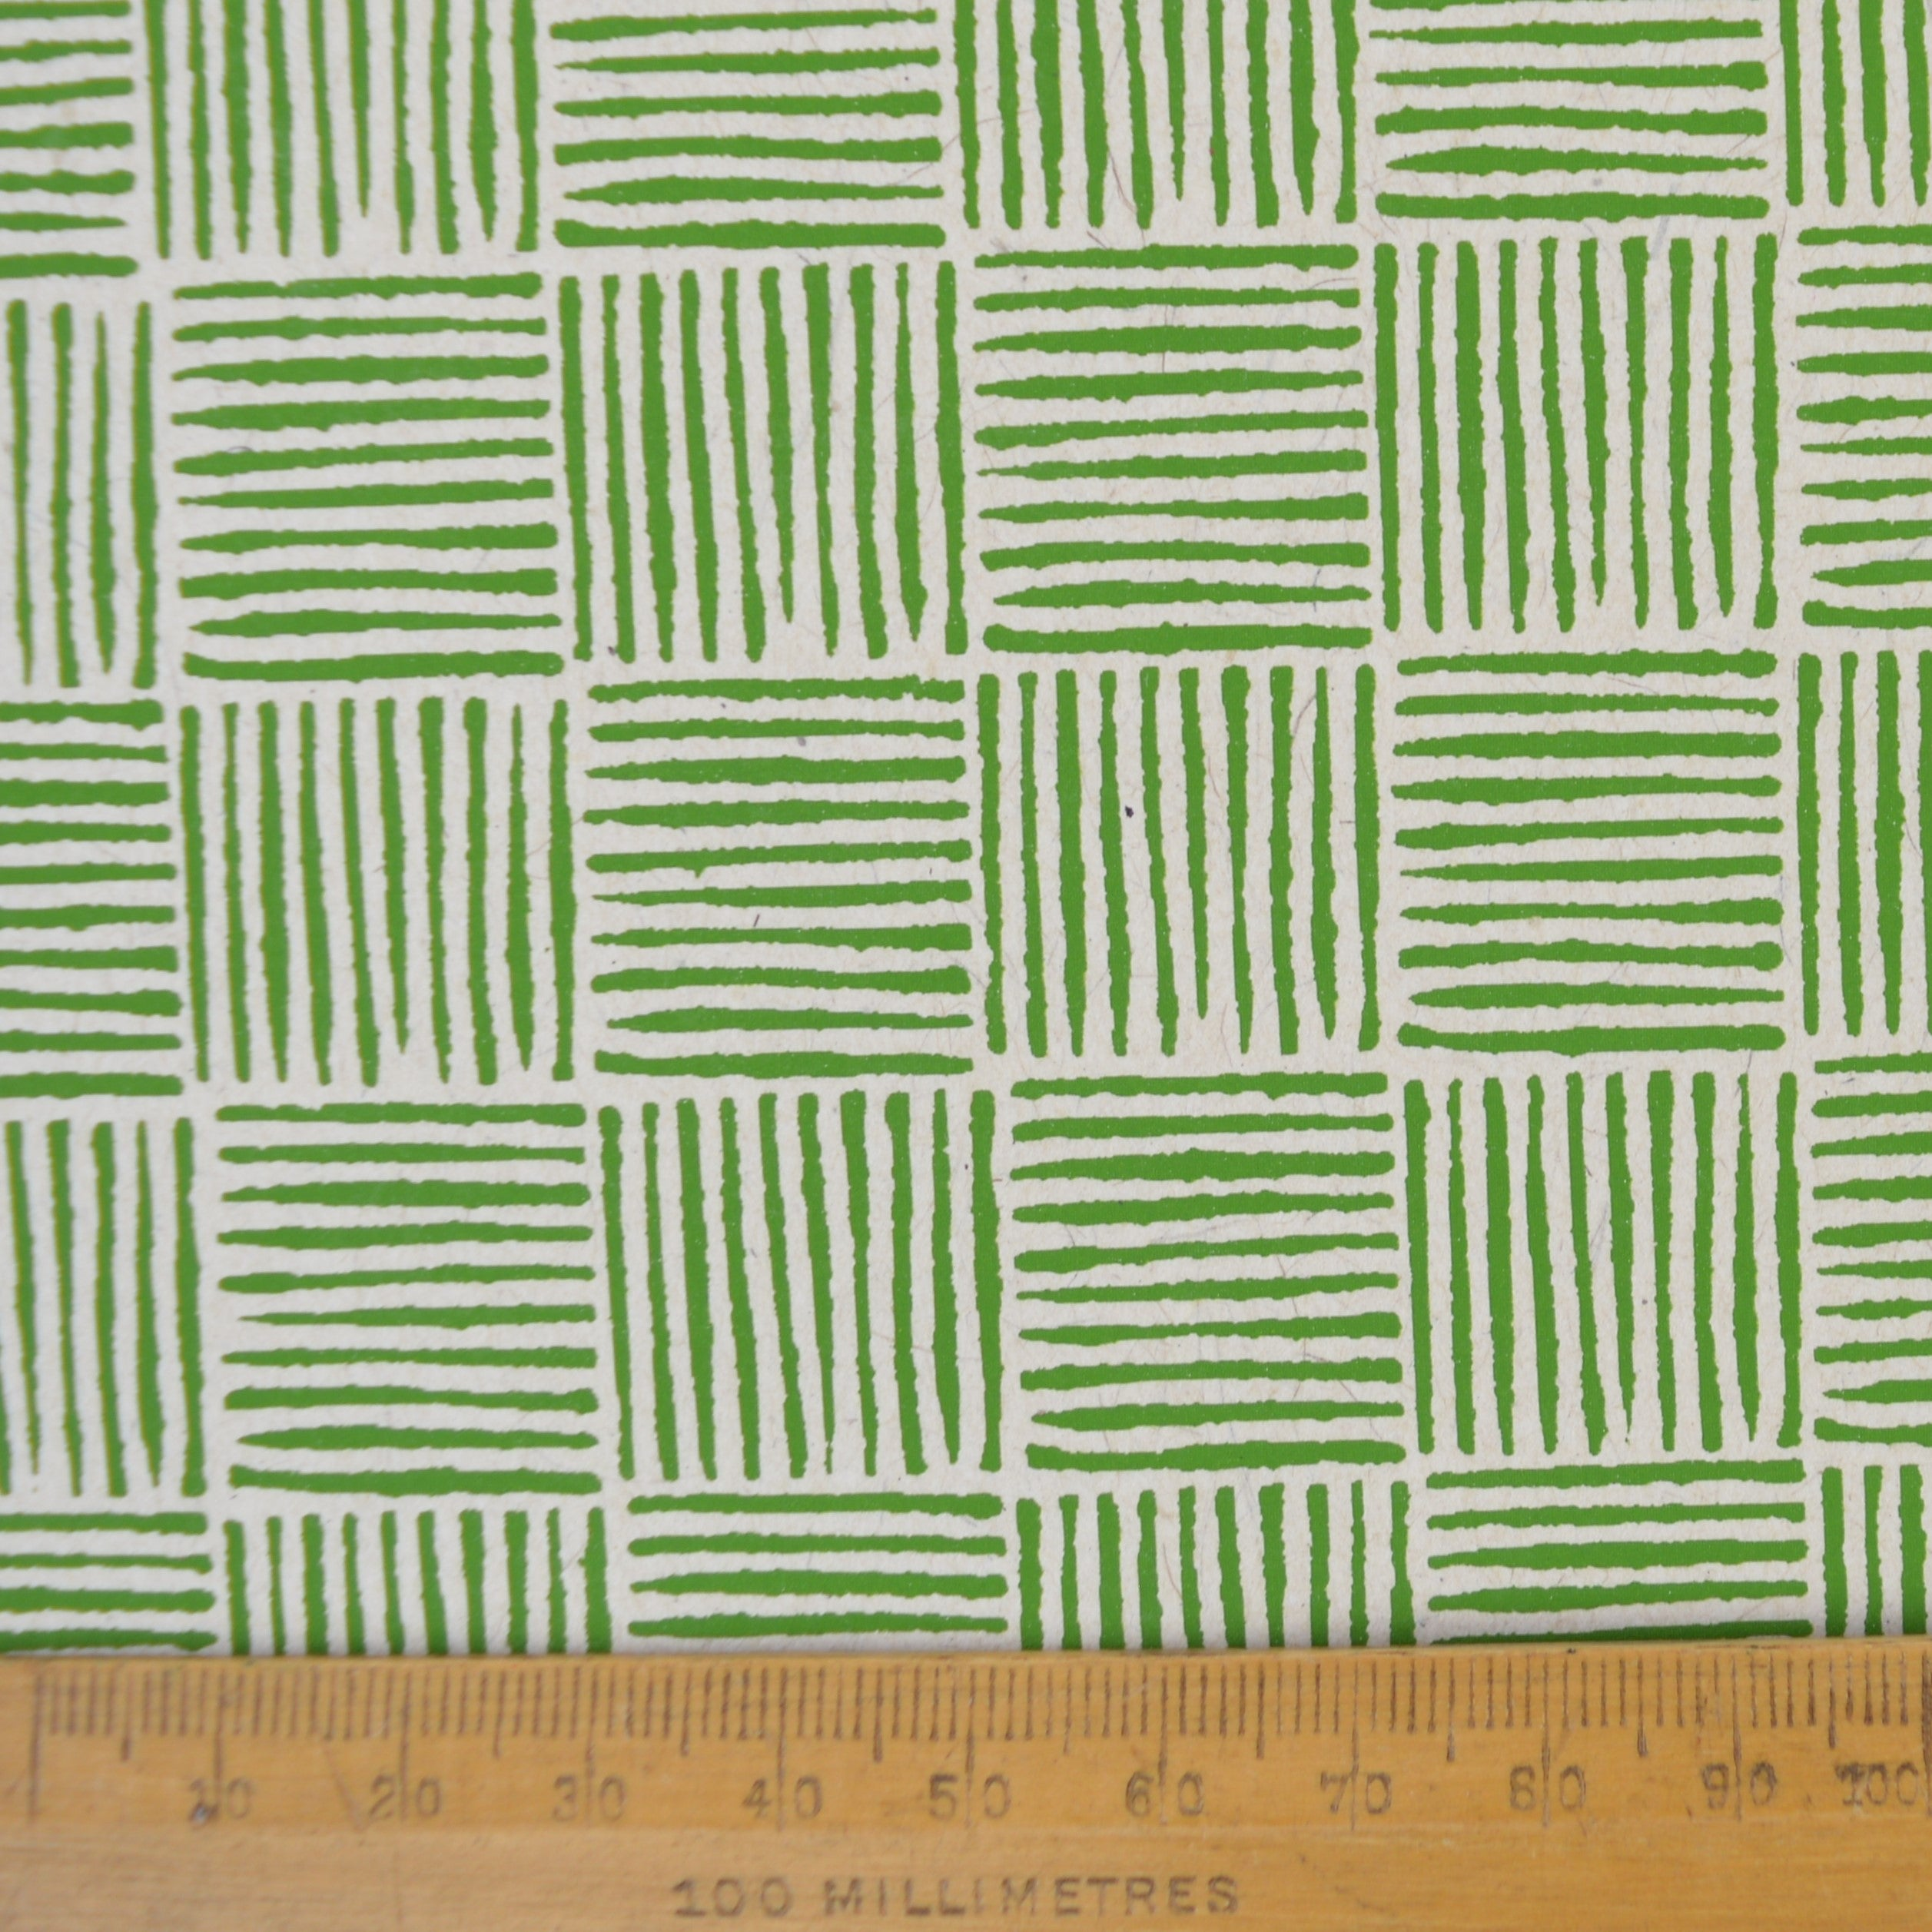 Munro and Kerr green hand printed paper for a lampshade